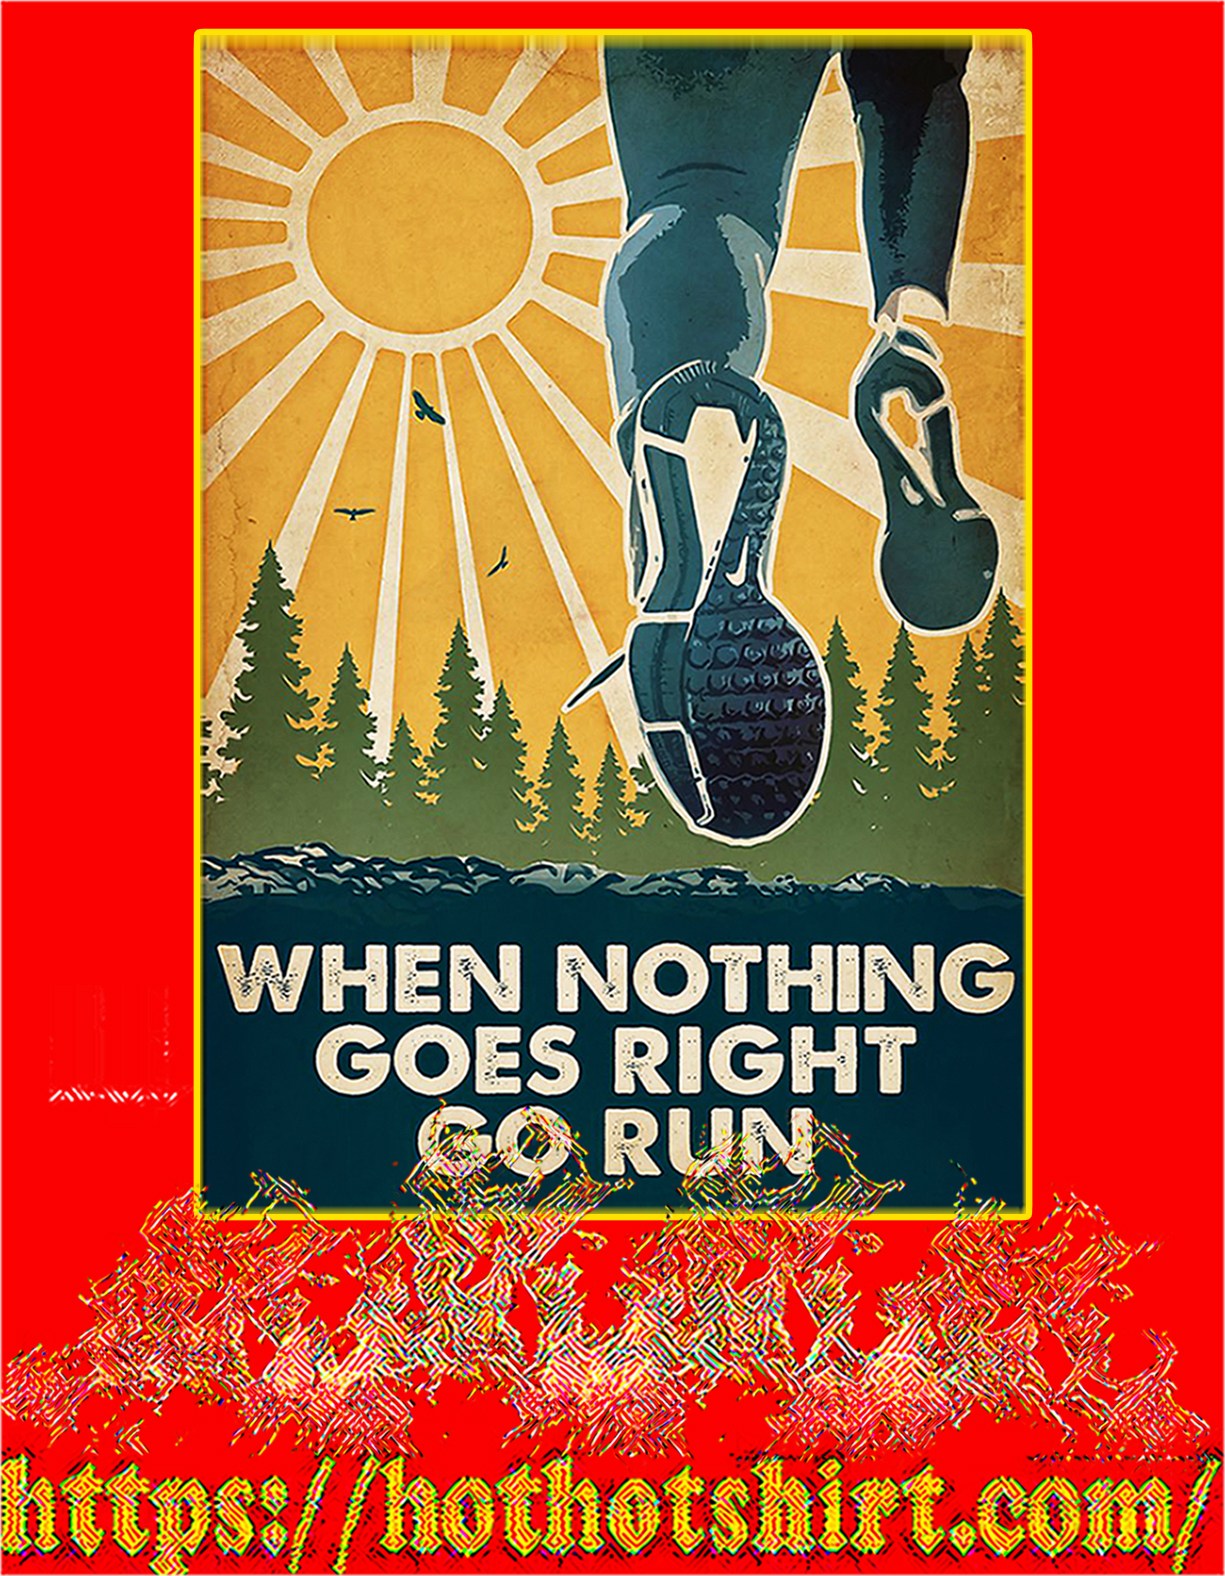 Running When nothing goes right go run poster - a4